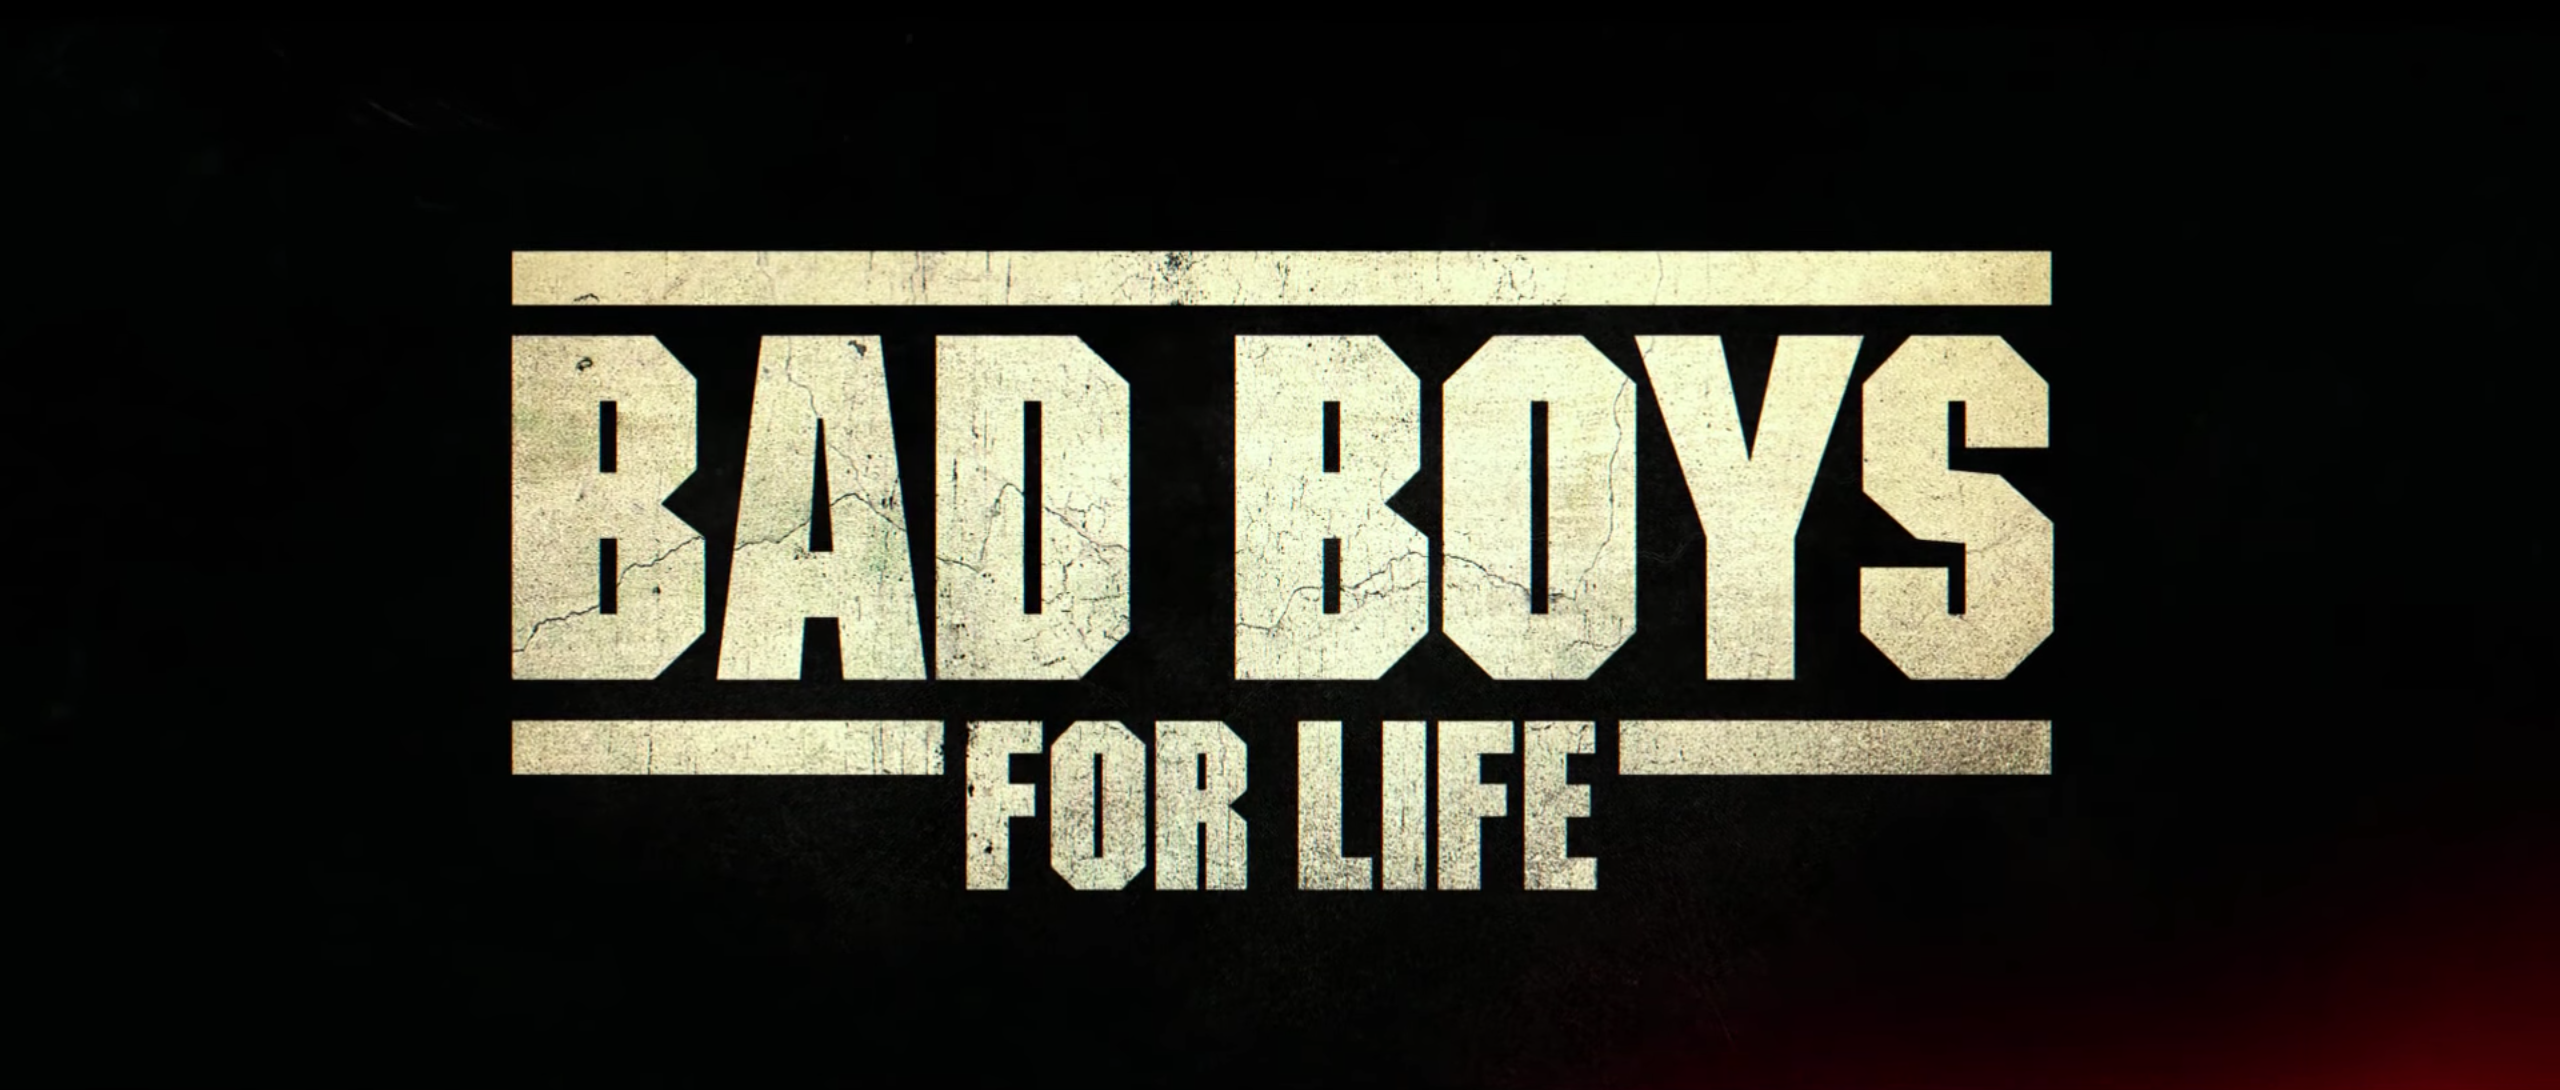 WATCH: New Bad Boys For Life Tralier